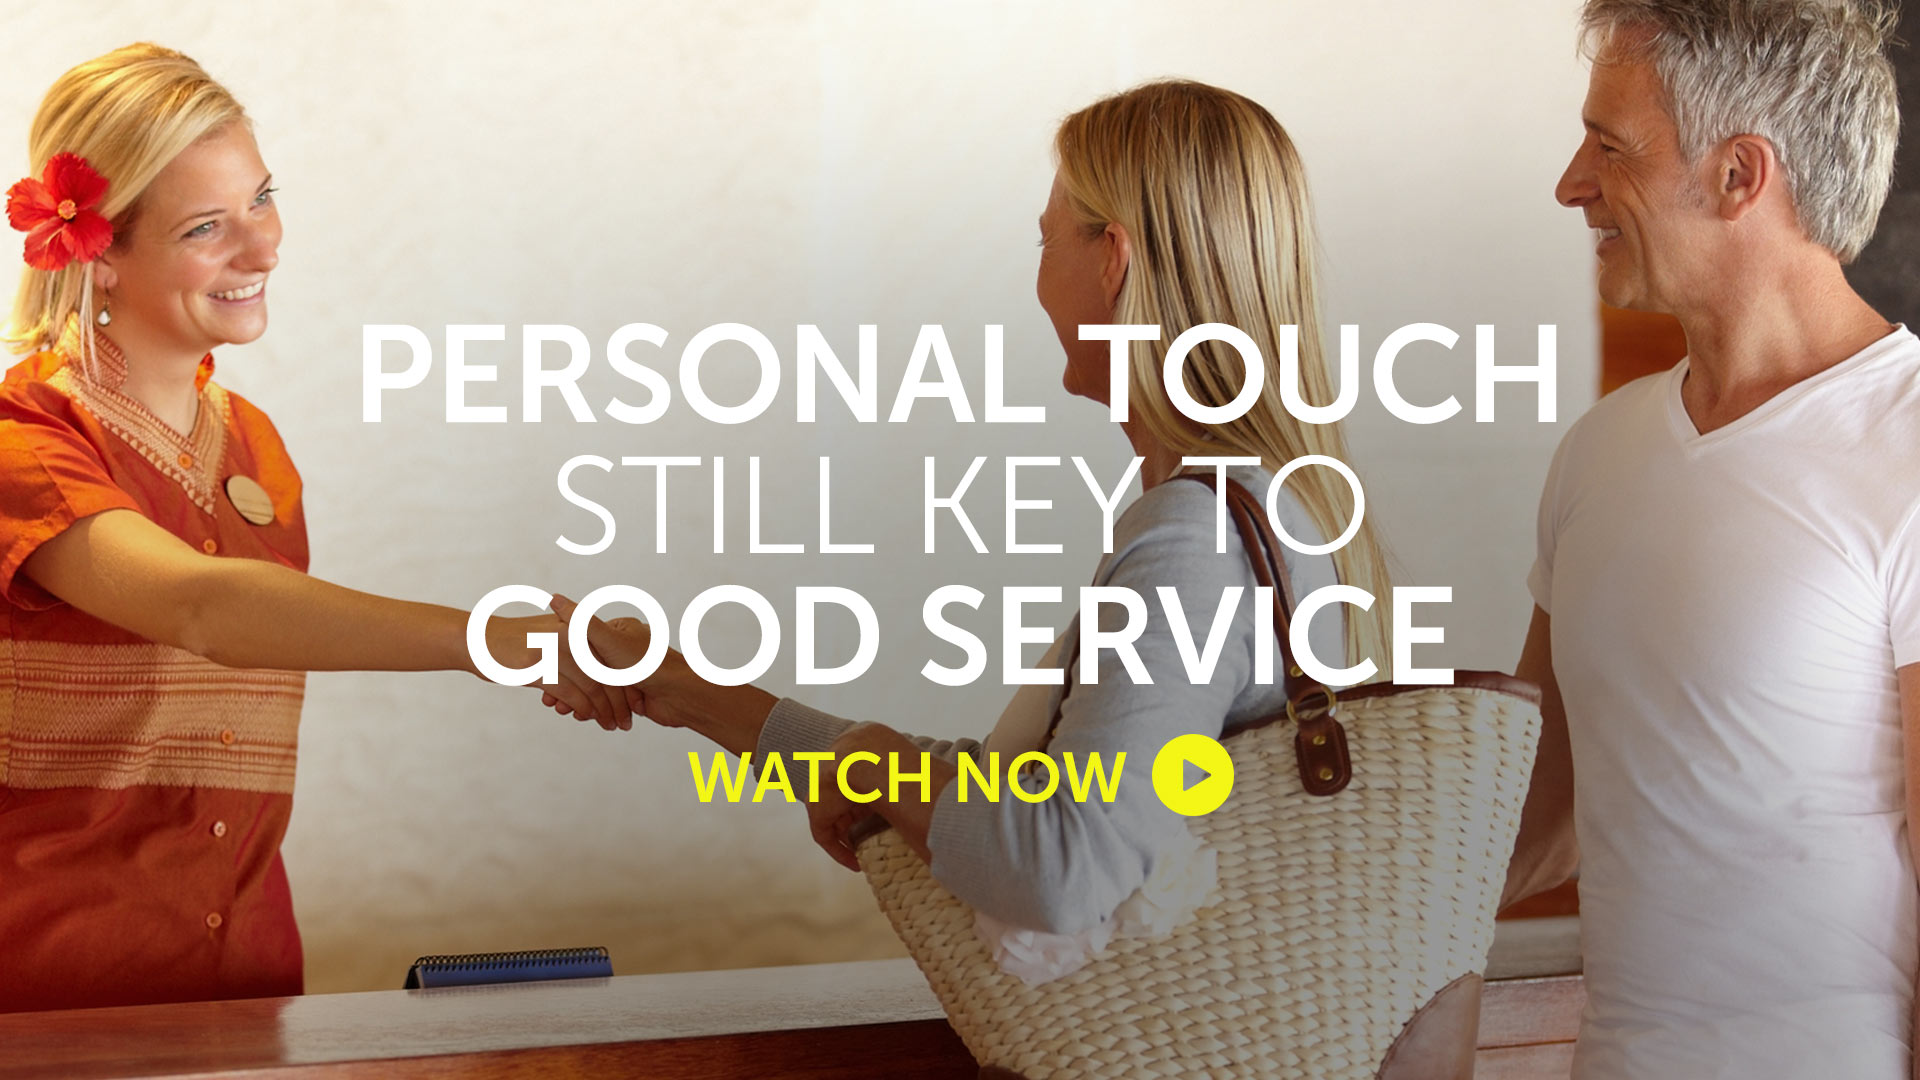 Briefing: Personal touch still key to good service